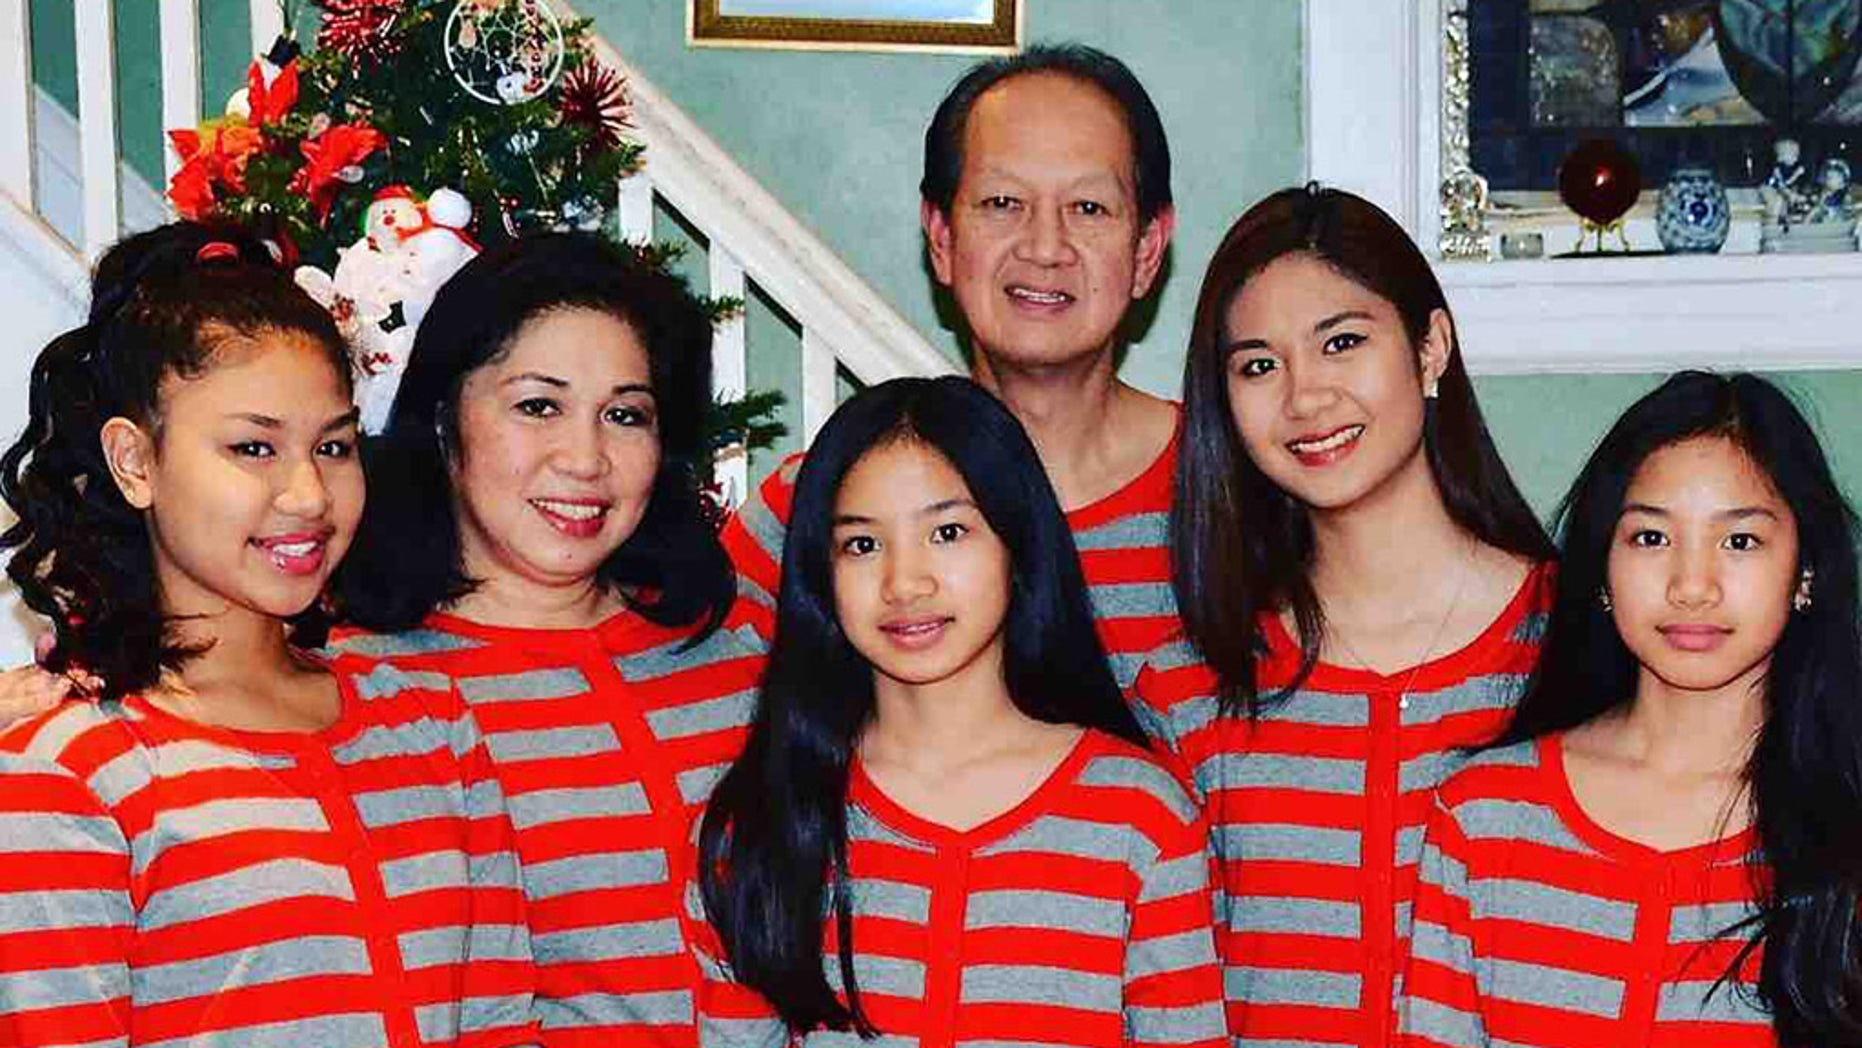 Audey Trinidad, 61, and his four daughter aged 13 to 20, were killed in a crash near Townsend, Delaware, Friday. His wife survived the accident.